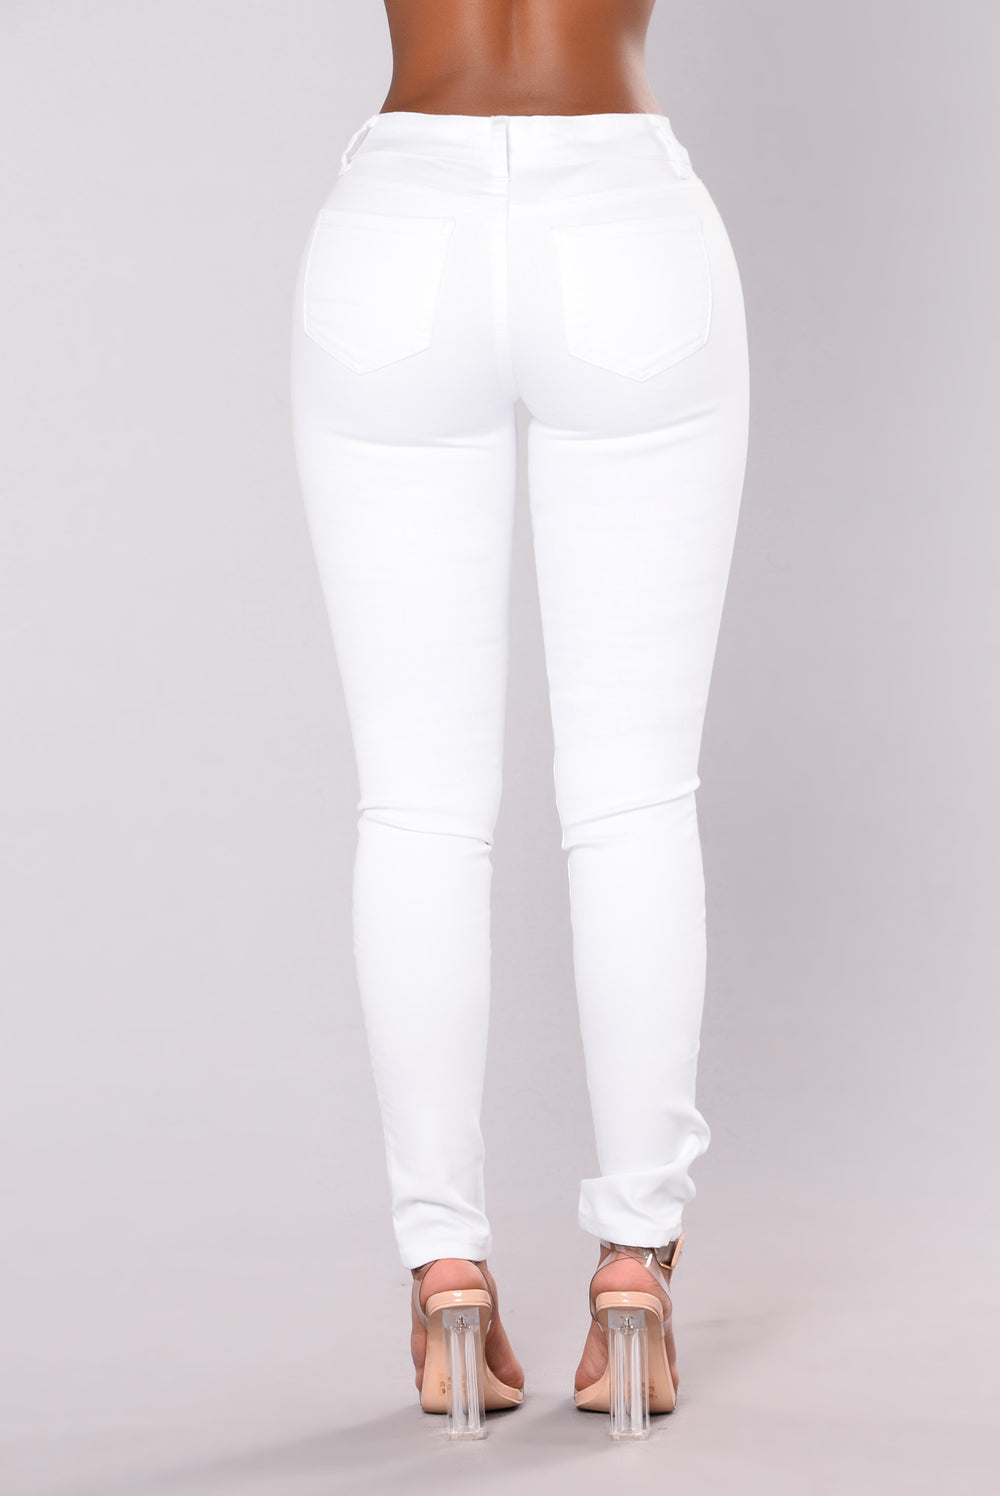 Sassy Distress Jeans - White